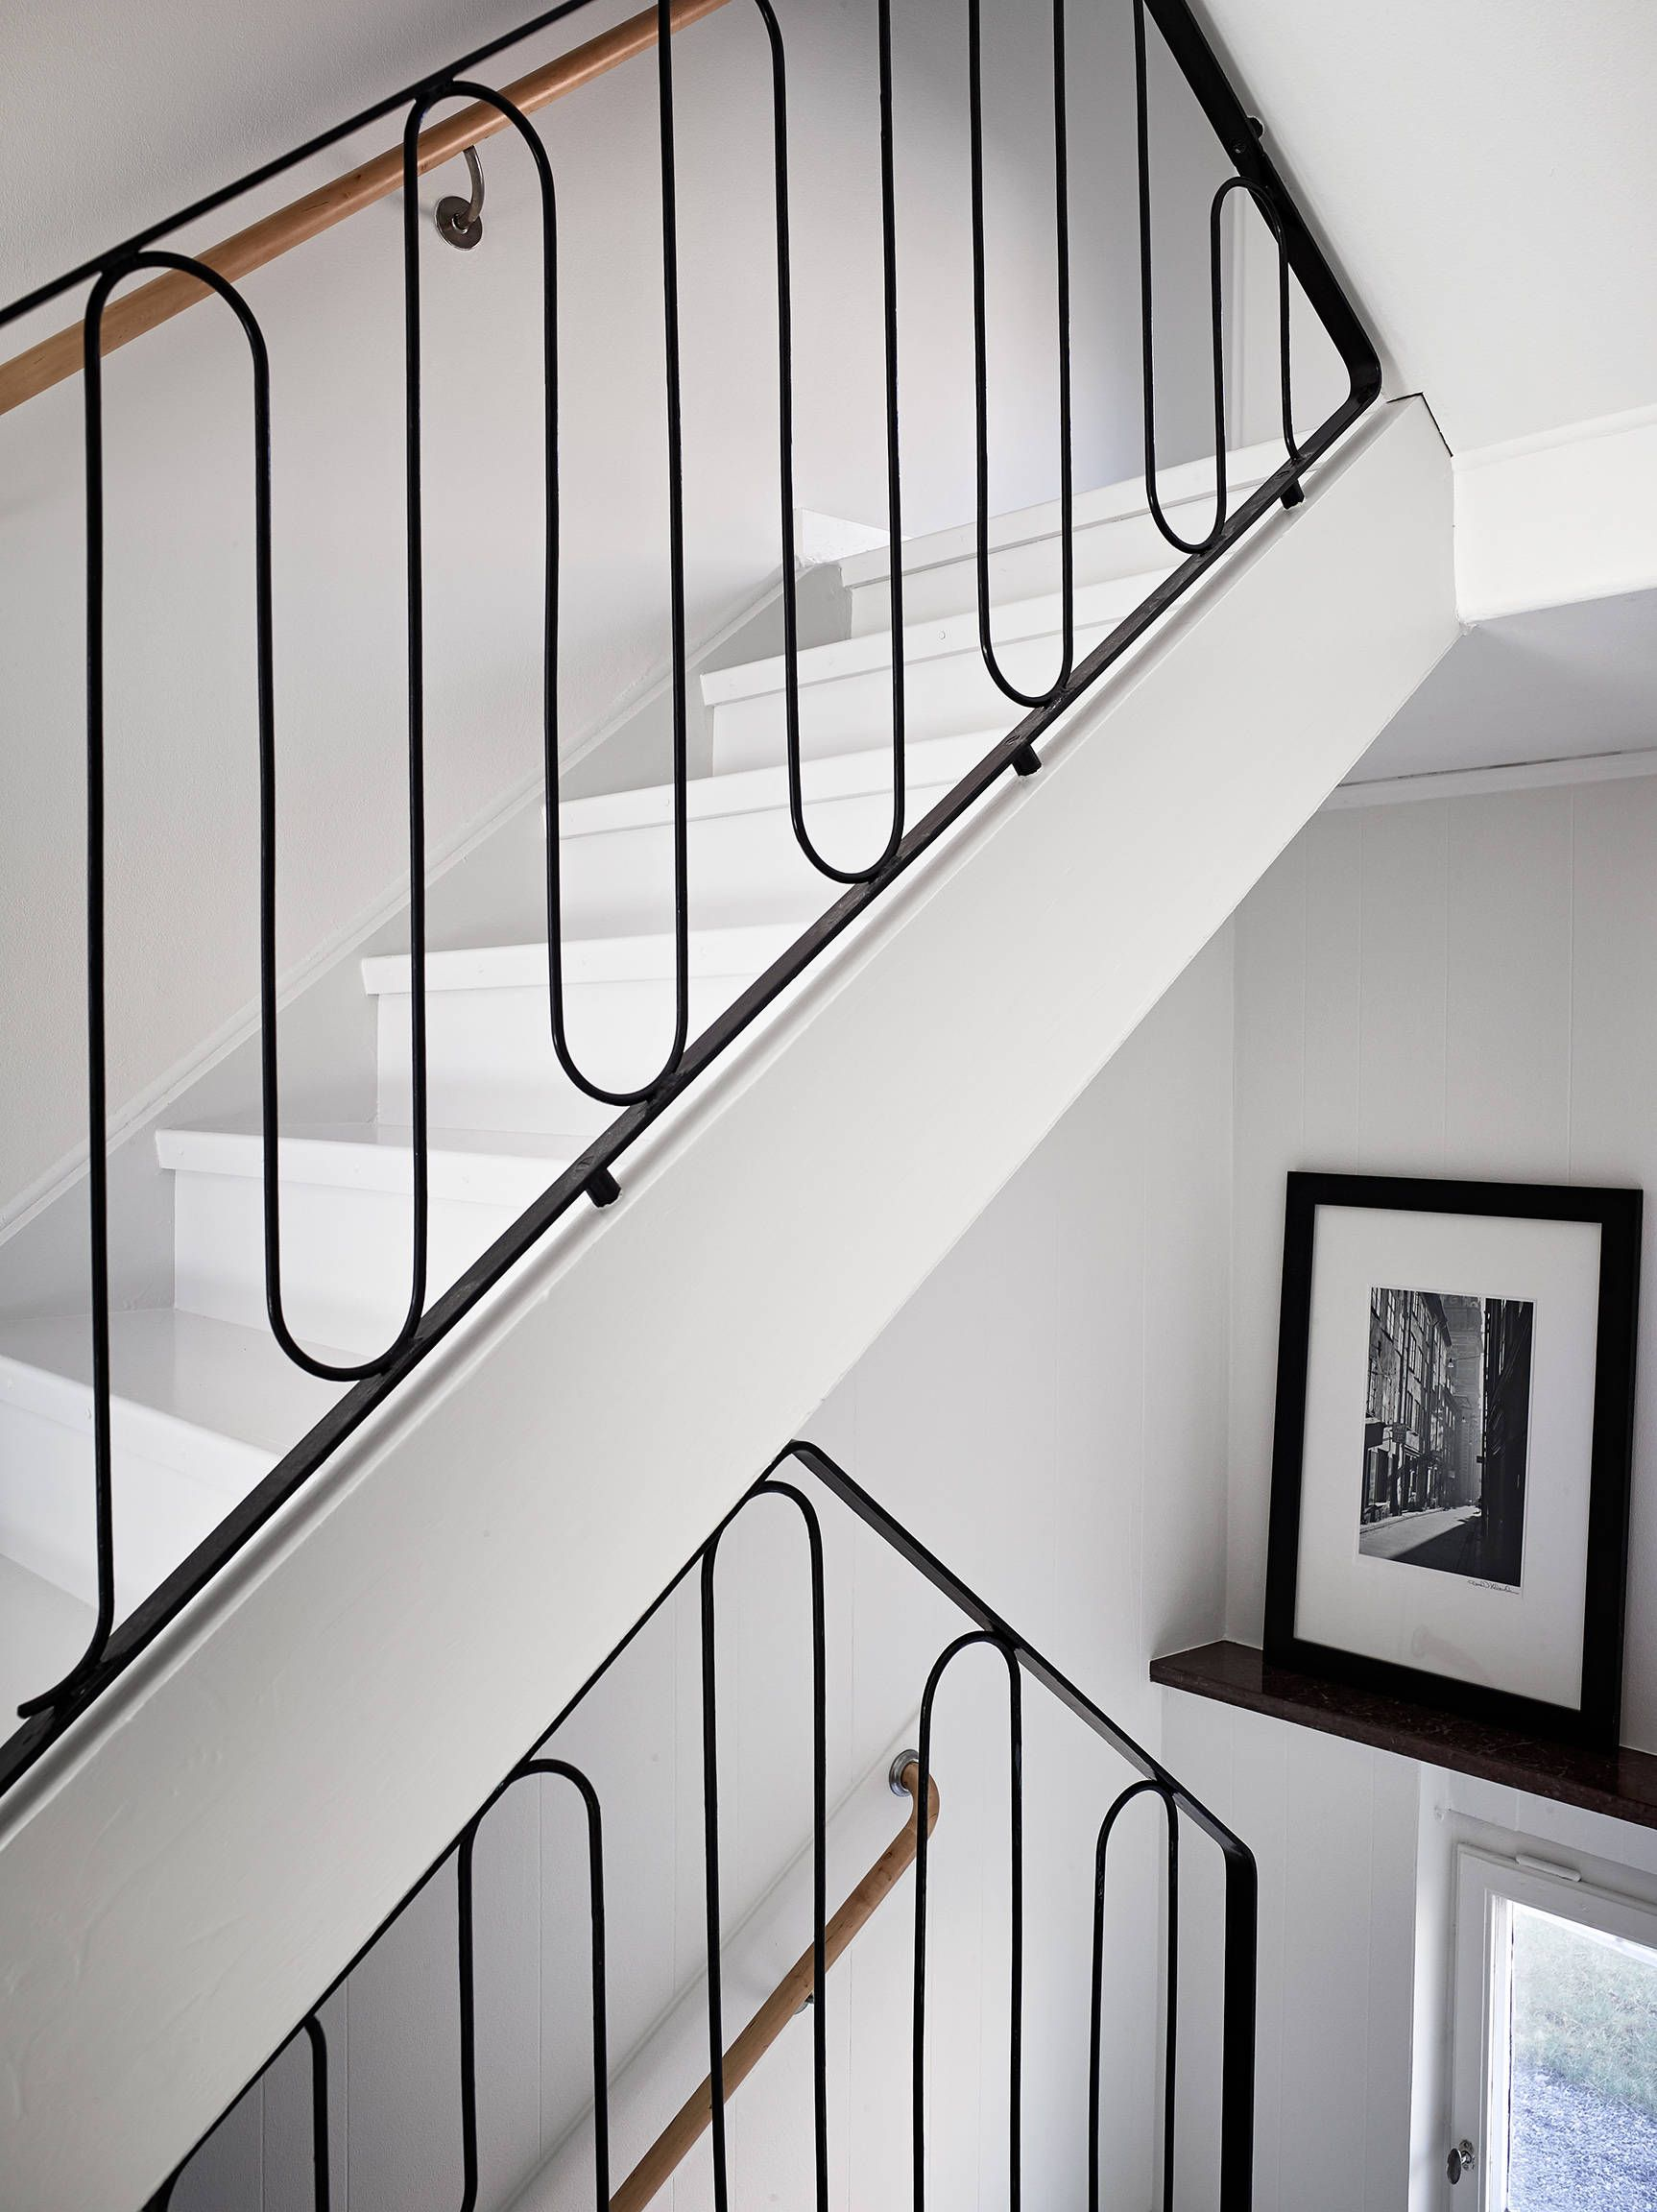 Exterior Wrought Iron Railings Home Depot Full Stair | Glass Stair Railing Home Depot | Iron Railings Interior | Baluster | Concrete | Deck Railing Designs | Wrought Iron Stair